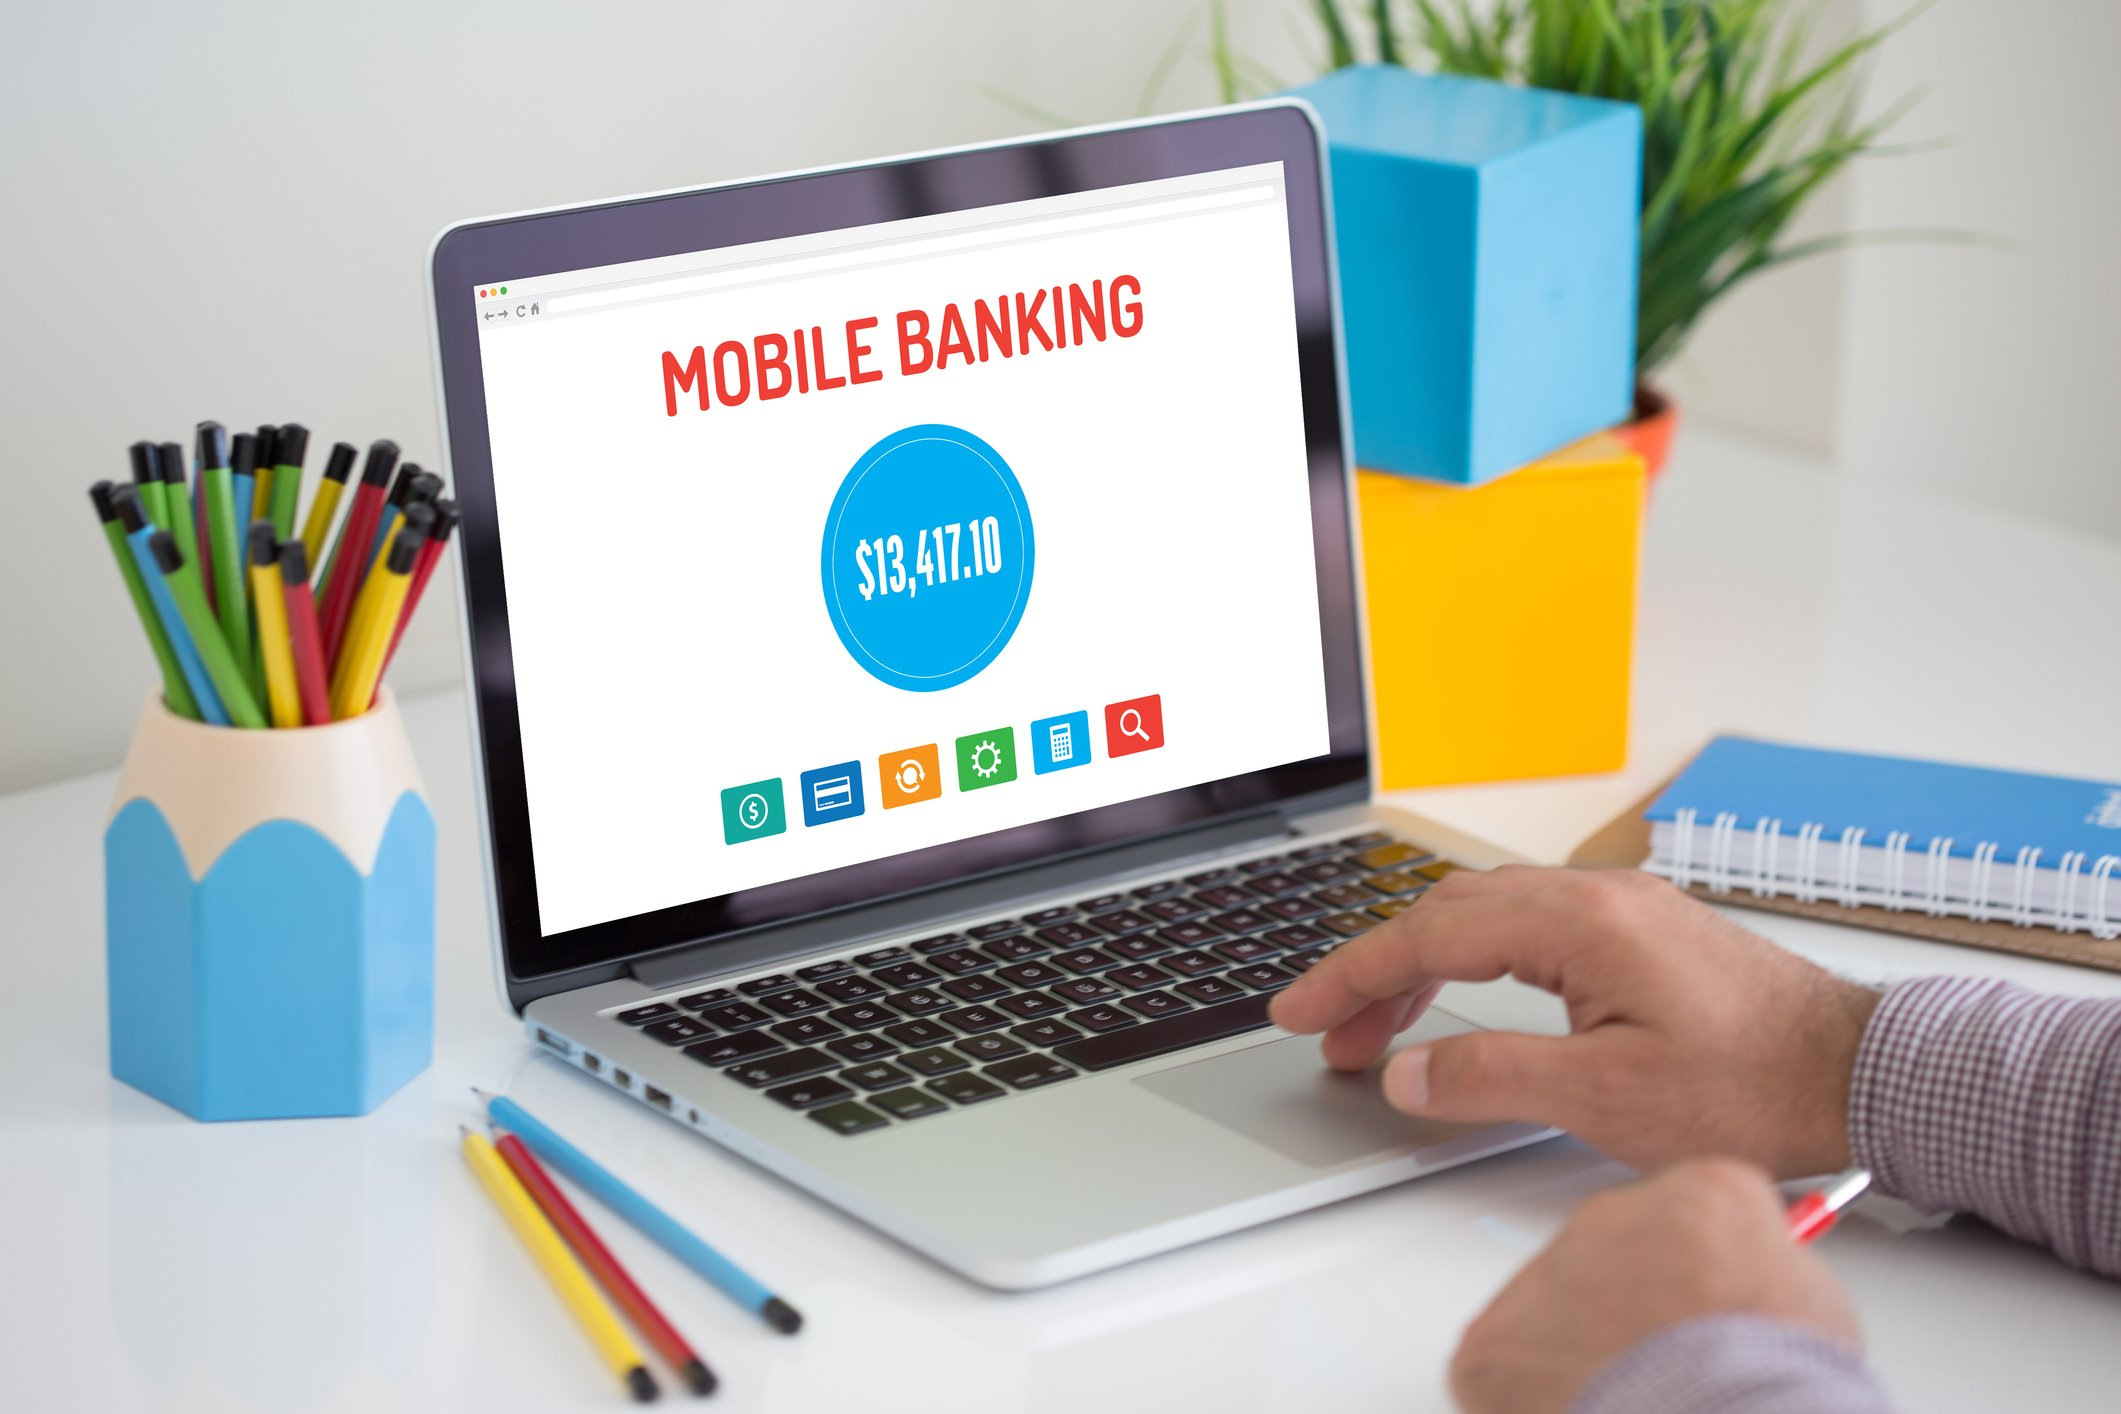 Laptop with mobile banking application